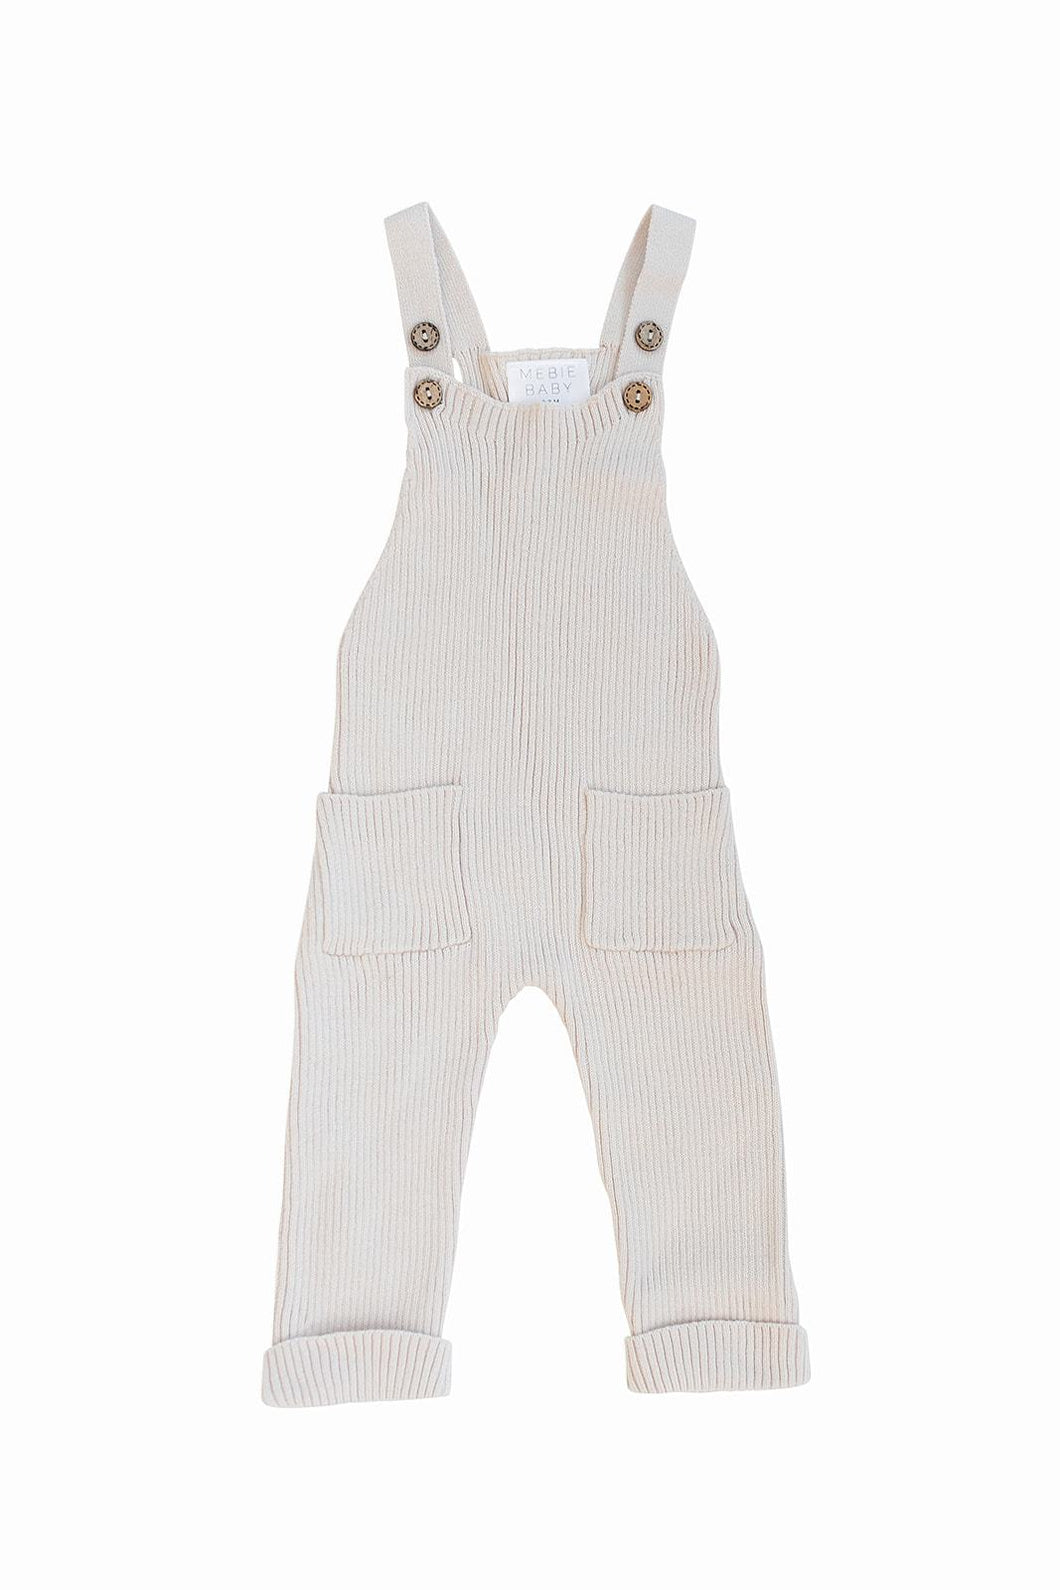 Knit Overalls in Cream